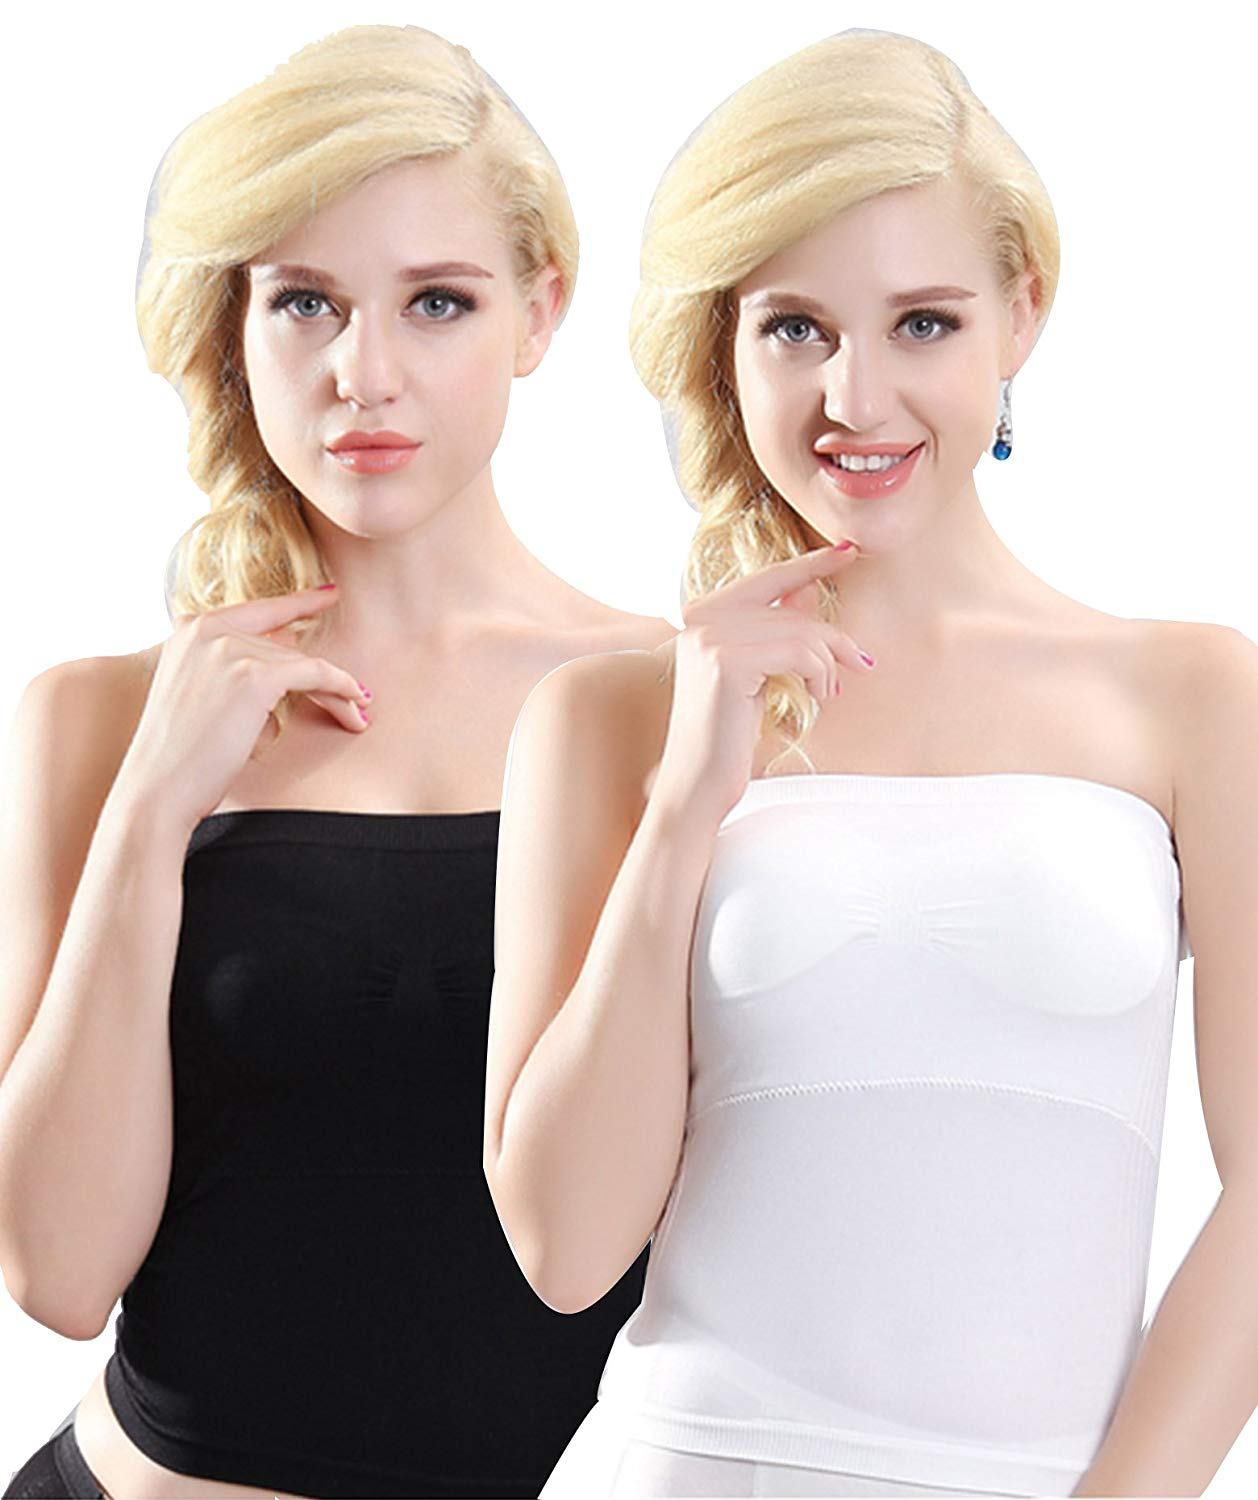 7e7595c0ea Get Quotations · Plumsika Women s Plain Strapless Long Tube Top Of 2 Packs